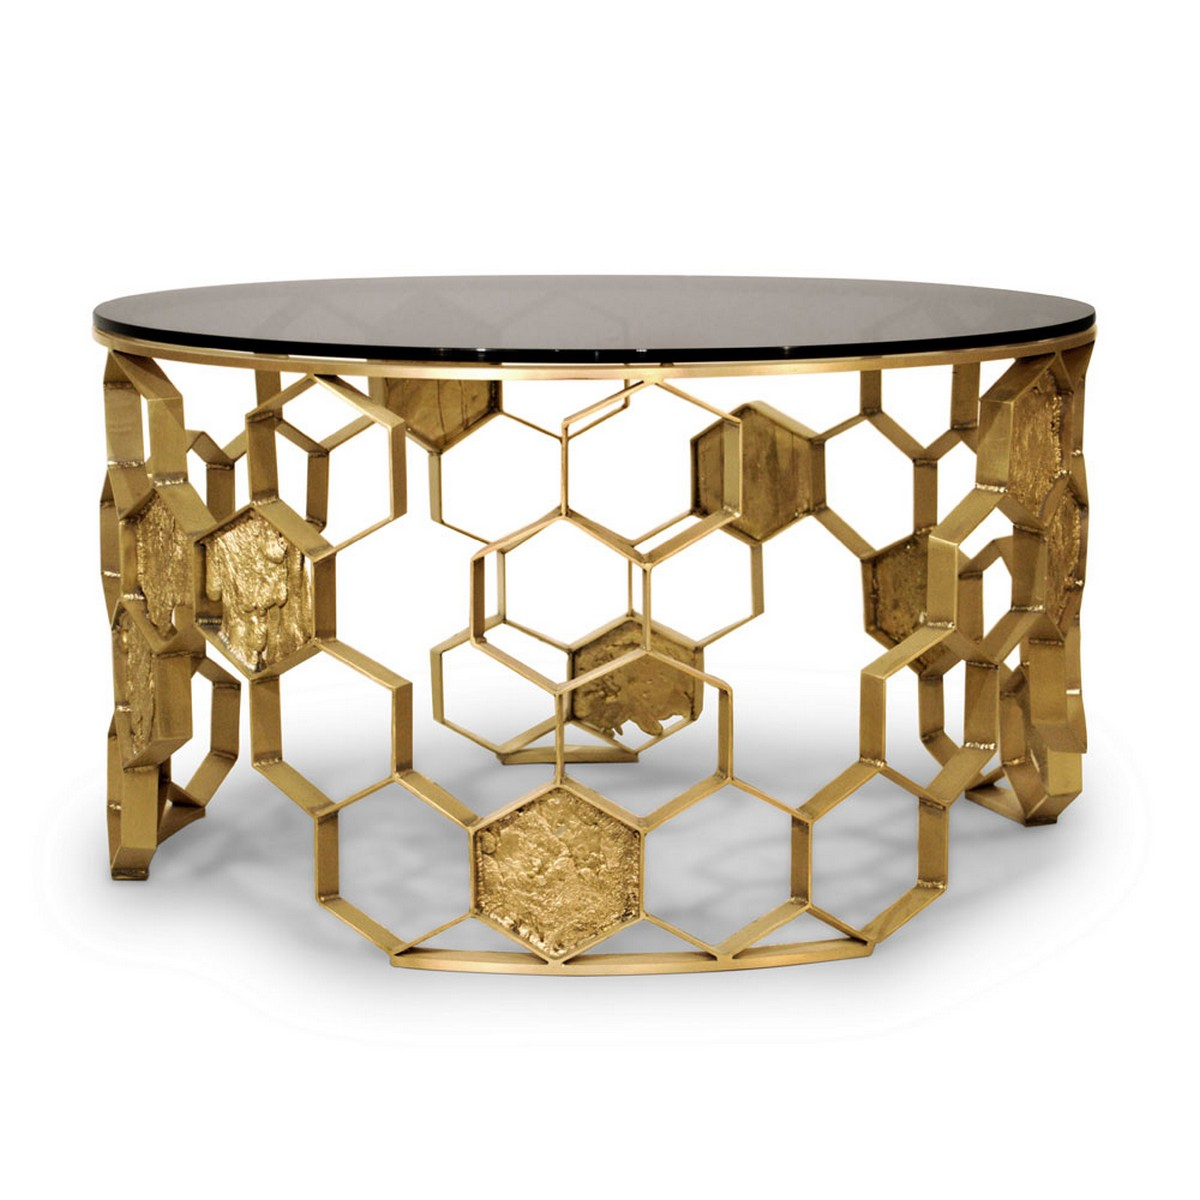 center tables, center tables design, exotic center tables, mysterious center tables, living room, living room decor, living room ideas, home decor, unique decor center table An Exotic and Mysterious Center Table For Your Decor manuka2 2